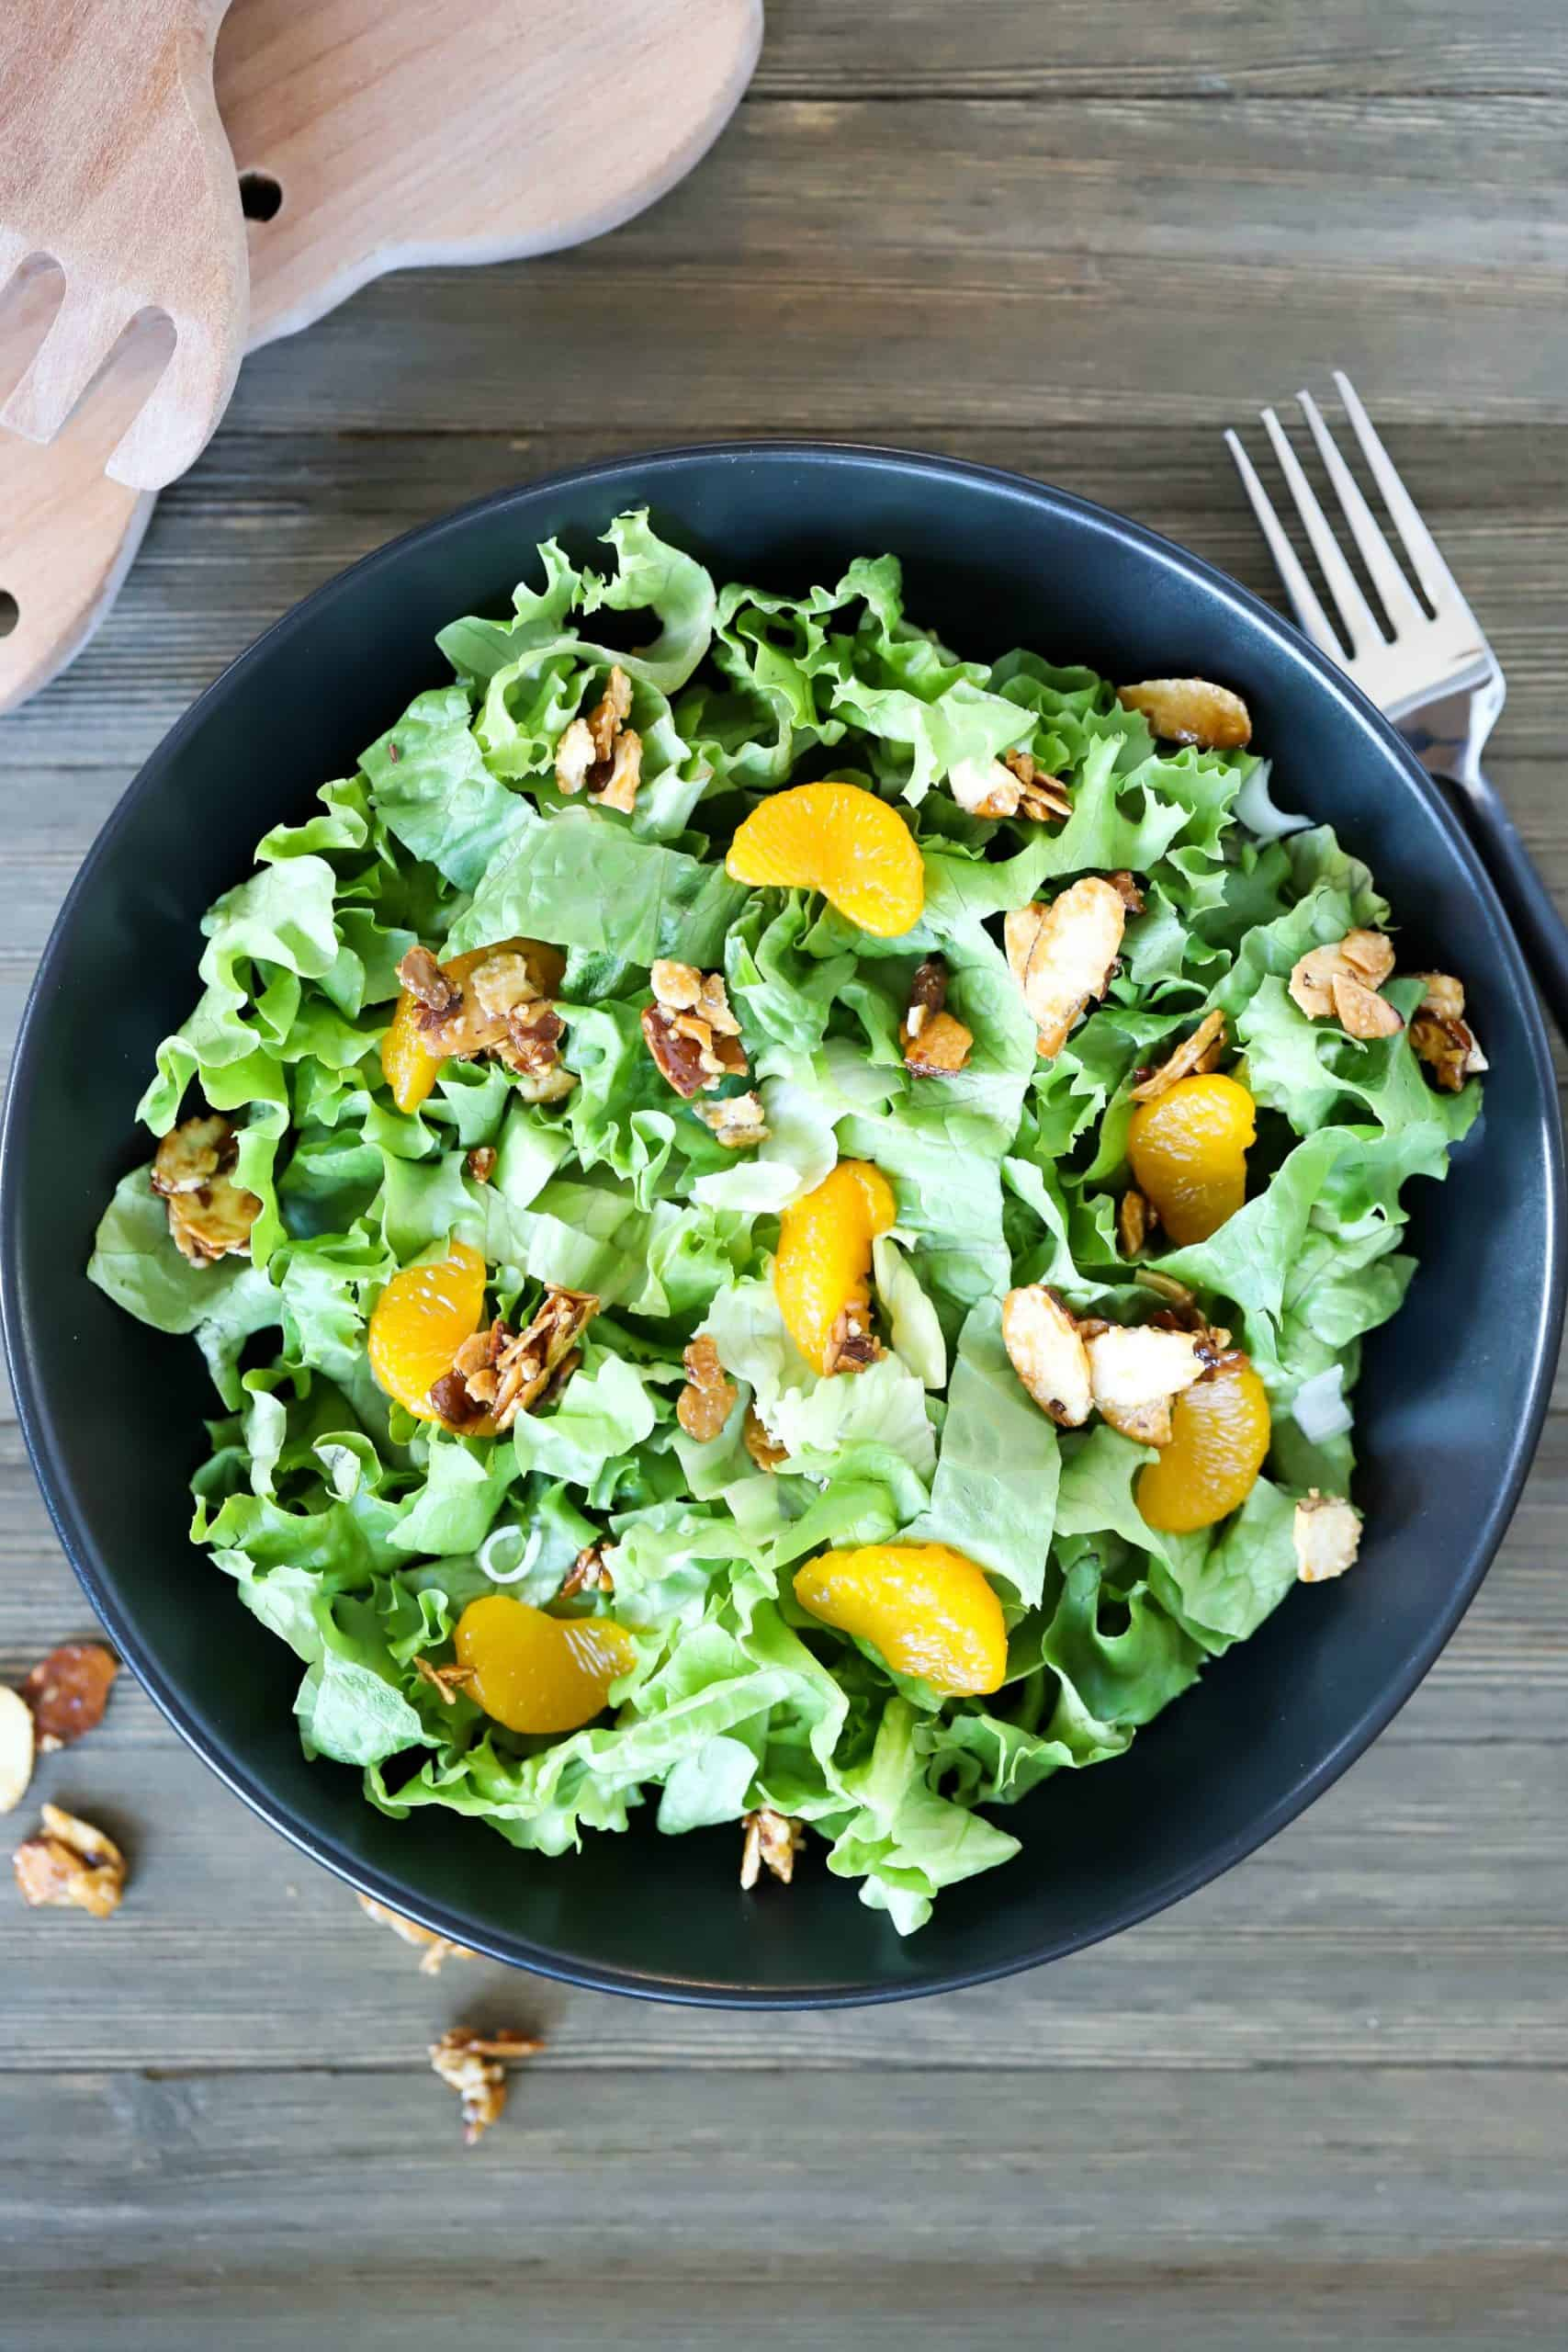 Overhead view of a black plate filled with lettuce, mandarin oranges and toasted almonds.